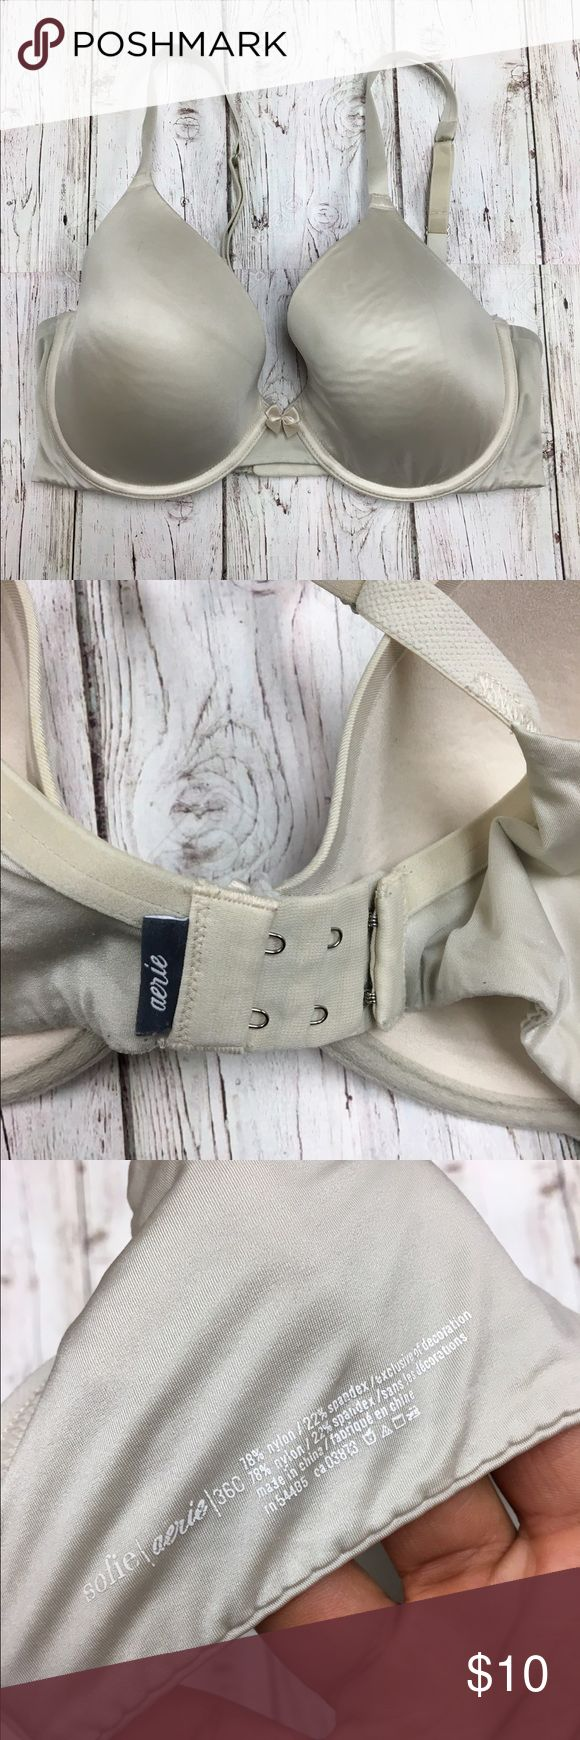 Aerie Bra 32C Has been worn about 3 times. This bra is in a great condition! You will receive Bra washed and ready to wear. Most Aerie bras is $30+ a bra in this style. This is an awesome deal to get a beautiful bra! aerie Intimates & Sleepwear Bras